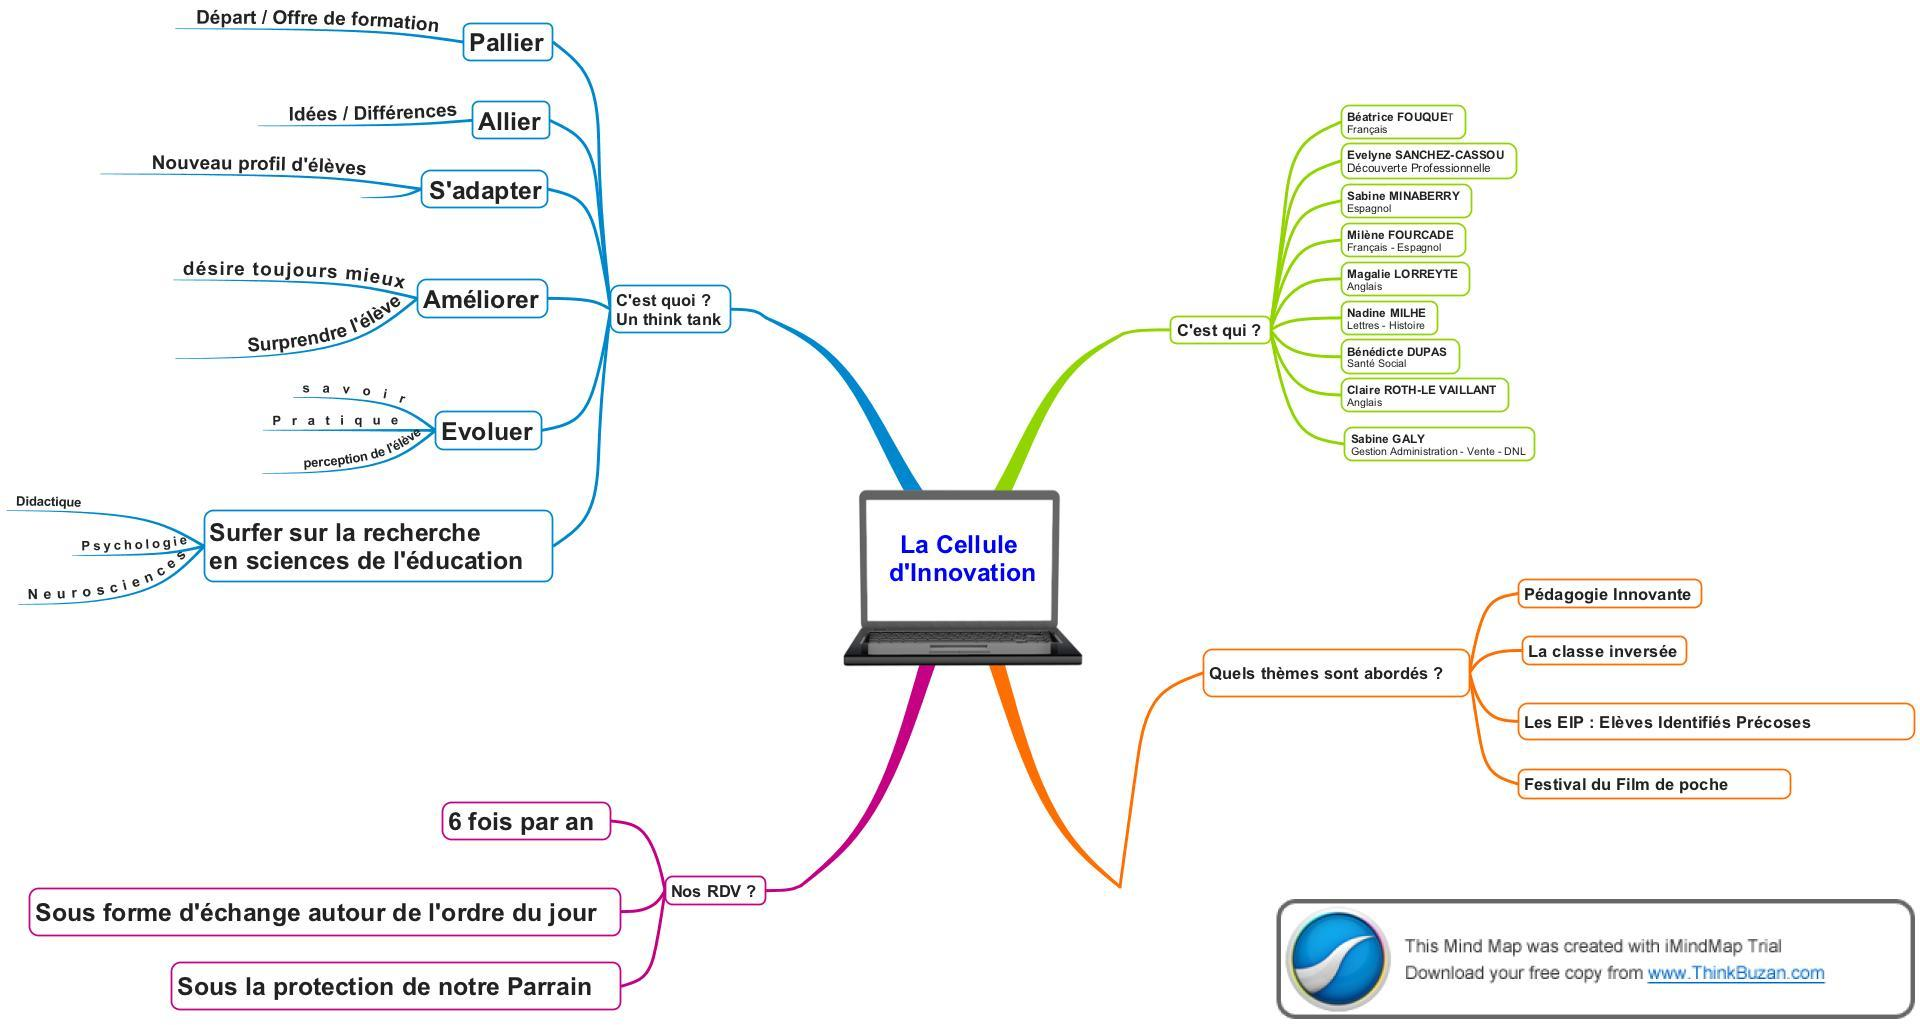 La Cellule dInnovation IMAGE Mind Map bis